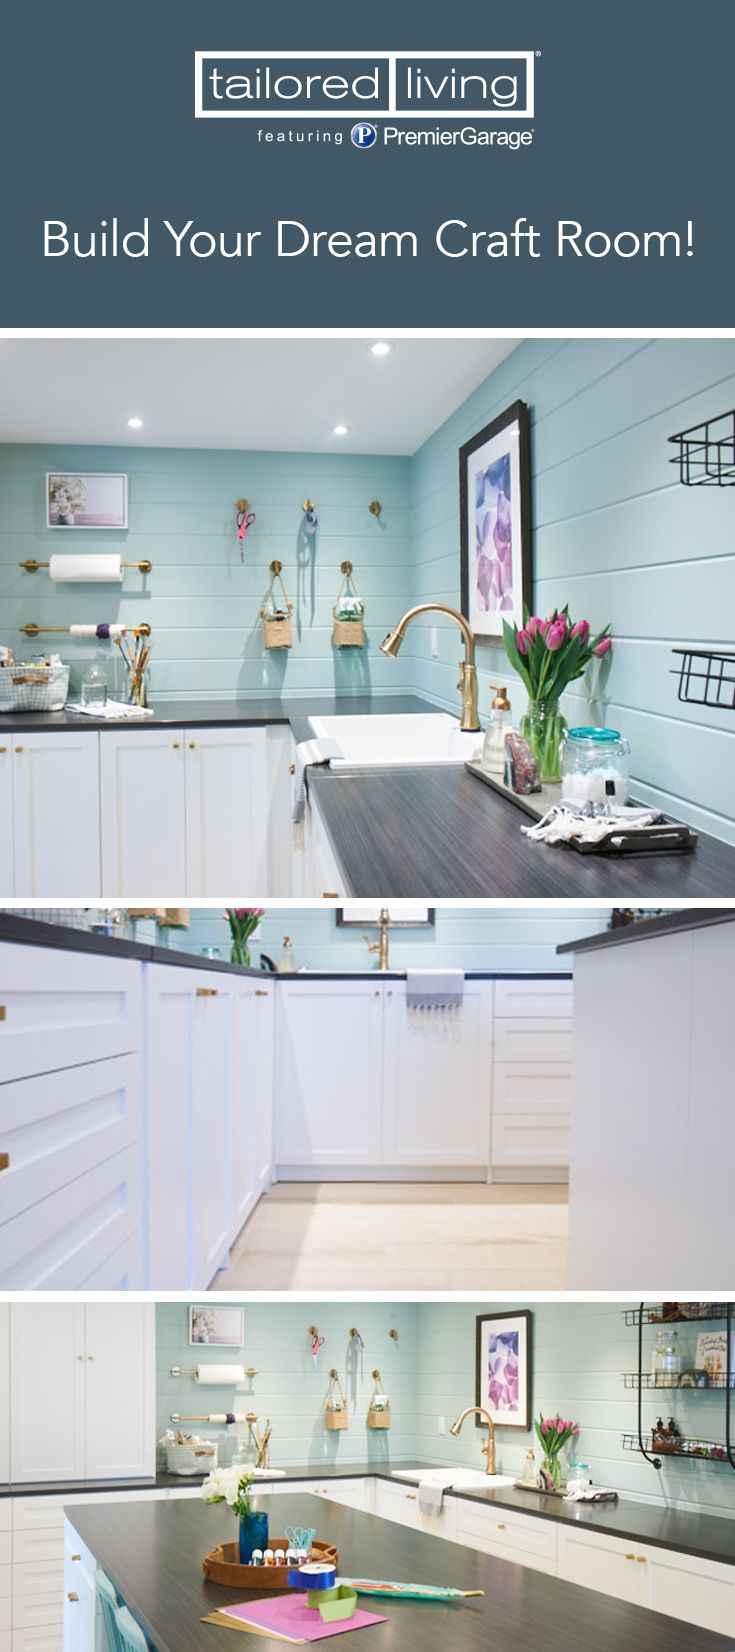 Create Your Ultimate Craft Room Request A Free In Home Consultation